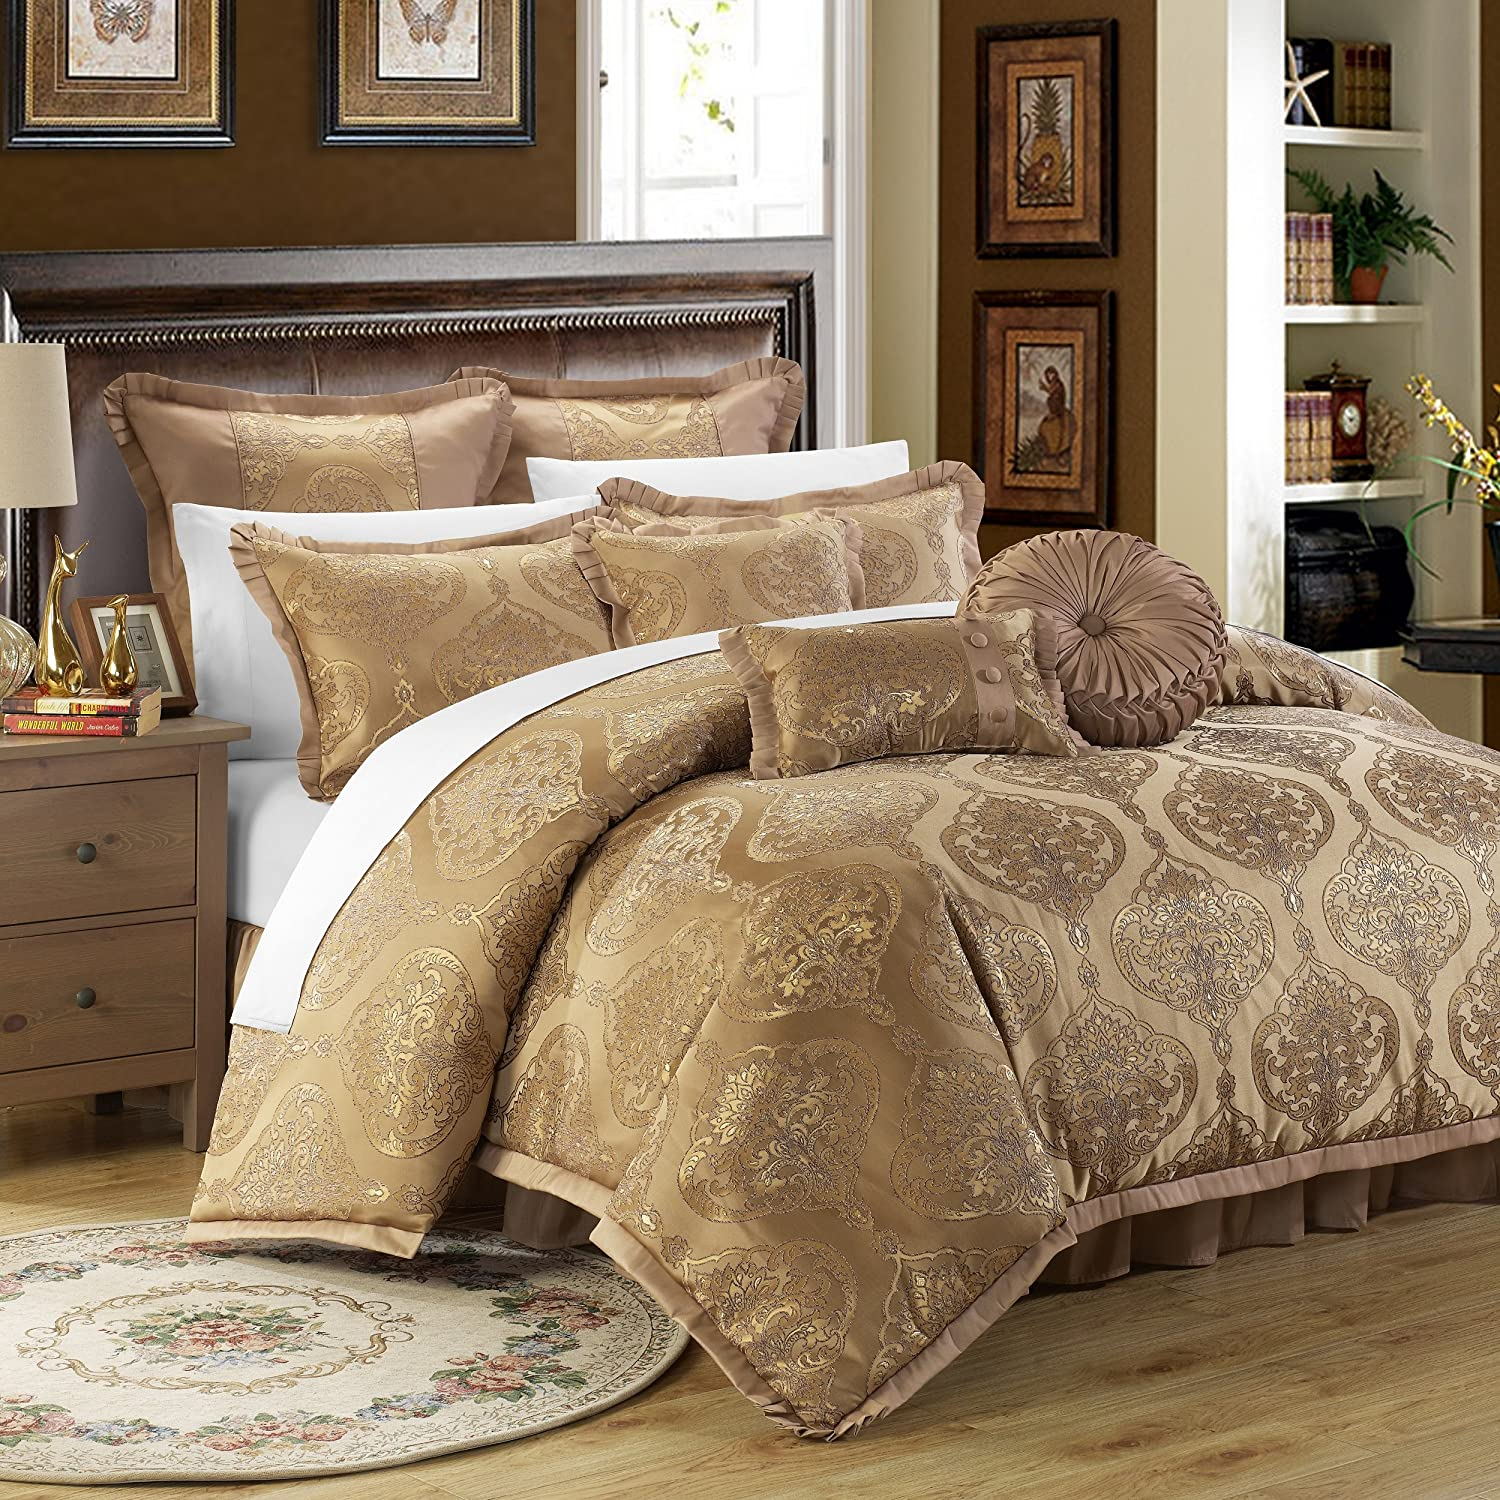 bath marbl set shop stewart comforter king bed soc piece martha marble flowers